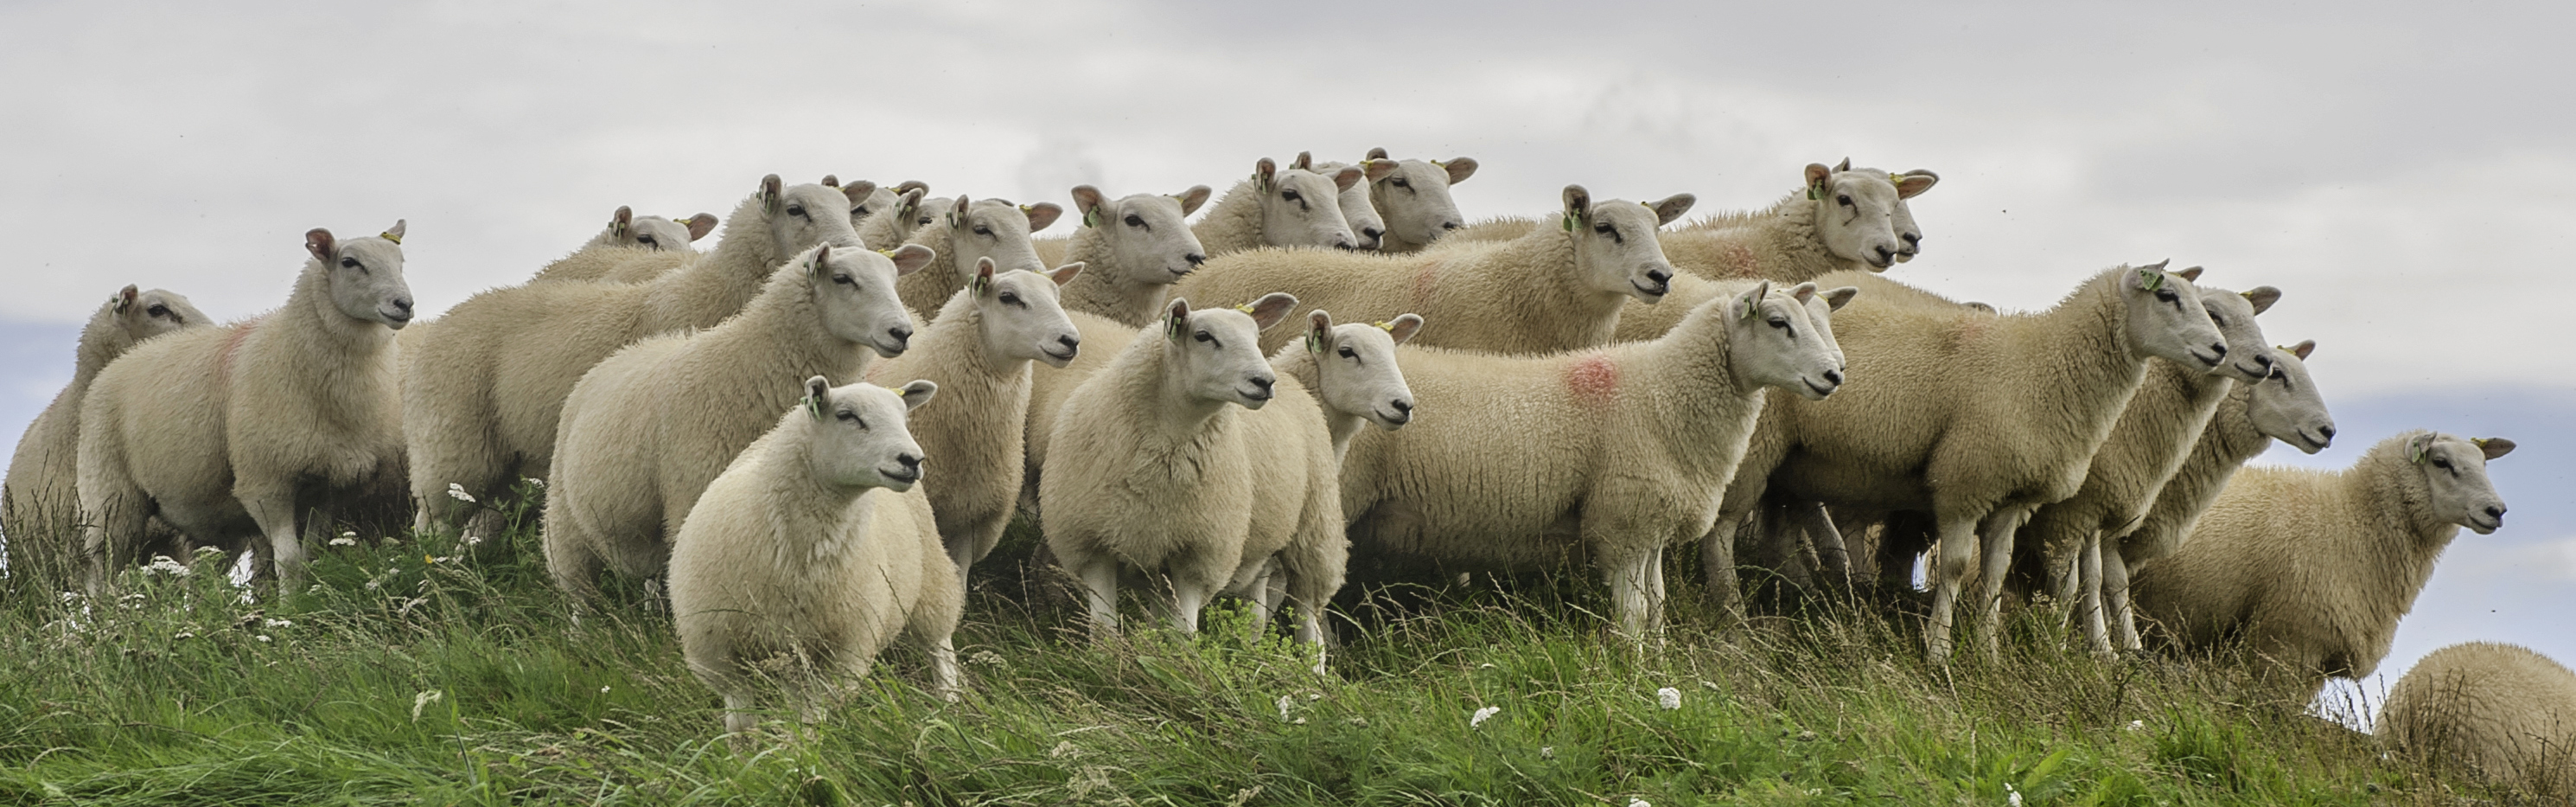 Knowles Ewes Lambs 2015 960px x 300px